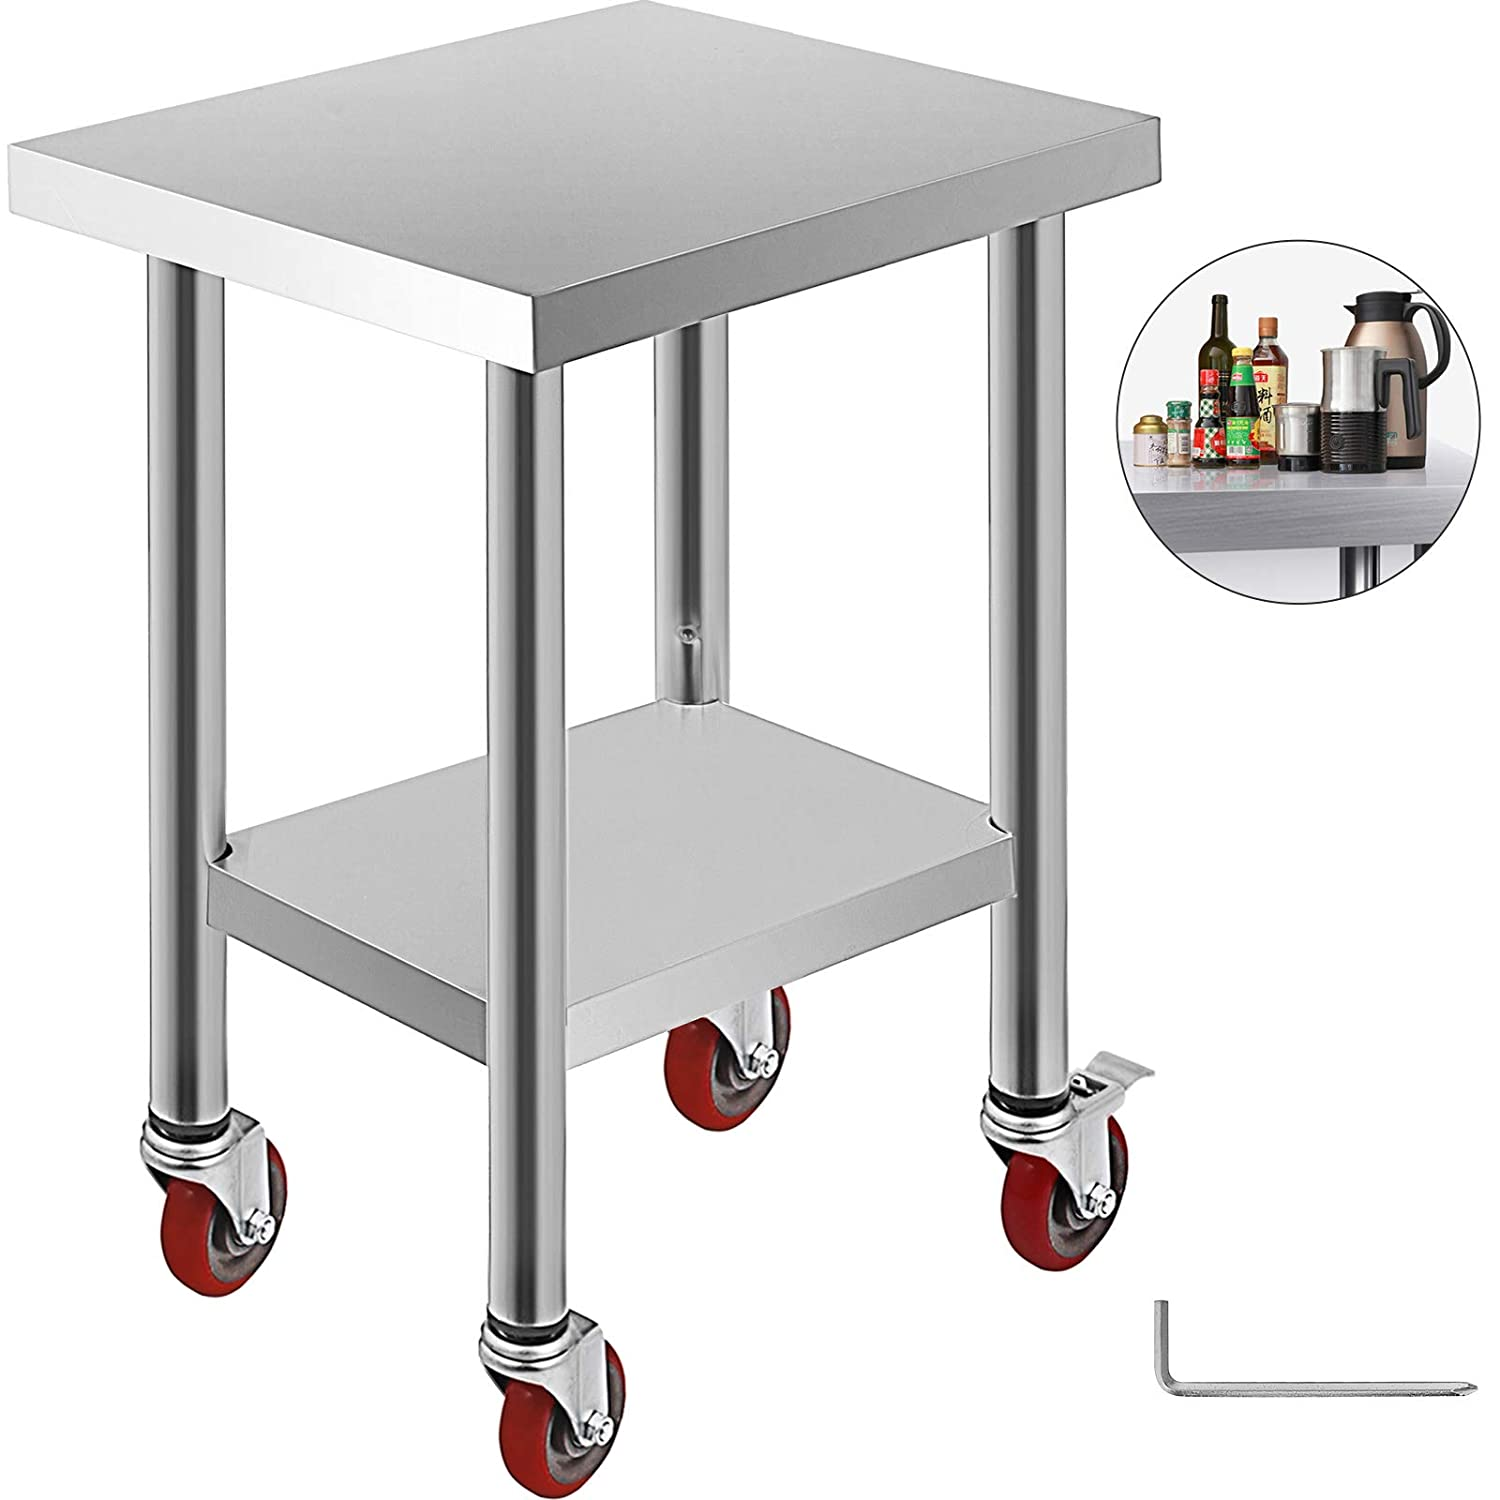 Mophorn 24x18 Inch Stainless Steel Work Table 3 Stage Adjustable Shelf with 4 Red Wheels Heavy Duty Commercial Food Prep Worktable with Brake